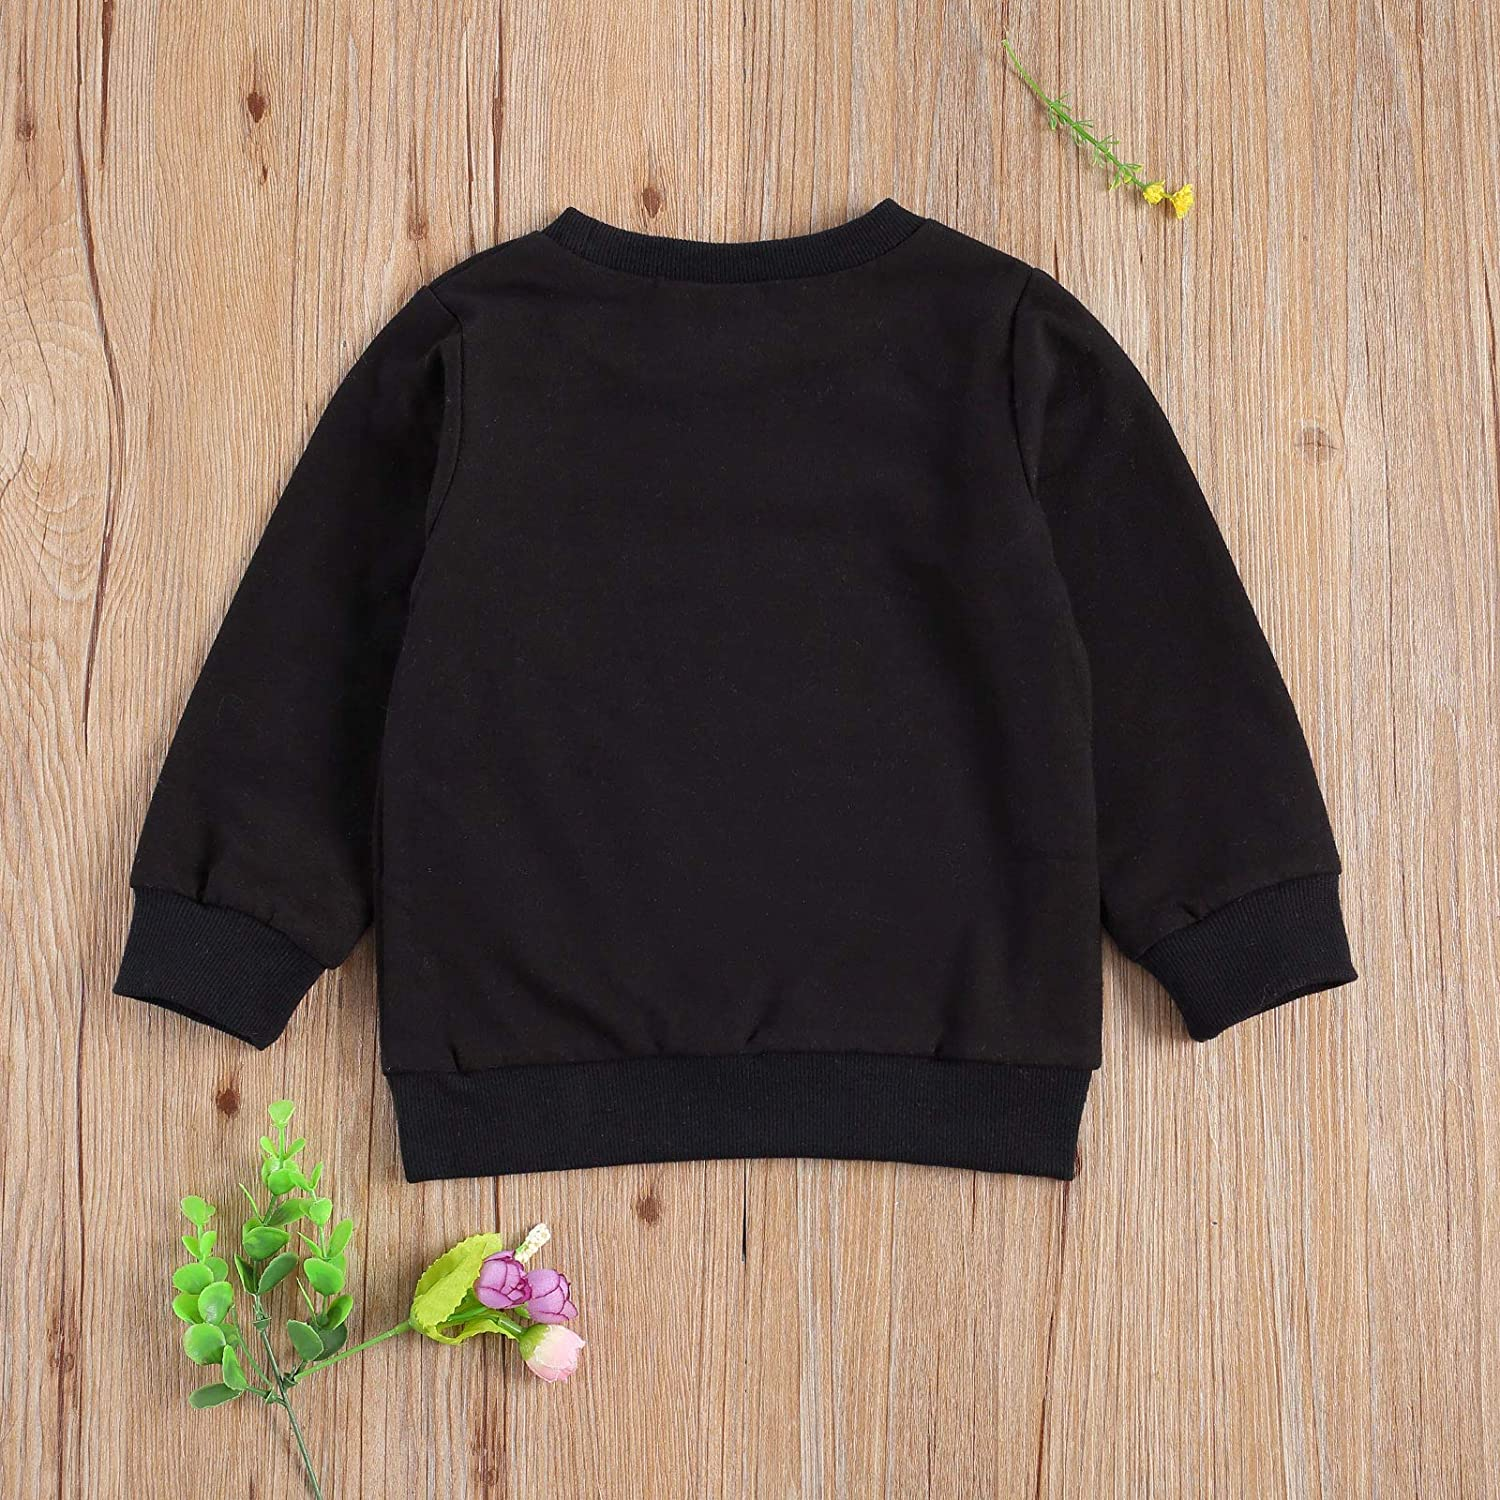 Toddler Baby Boy Girl Sweatshirt Long Sleeve Printed Love You More Tops Fall Winter Pullover Shirts Clothes (Black, 3-4 Years)